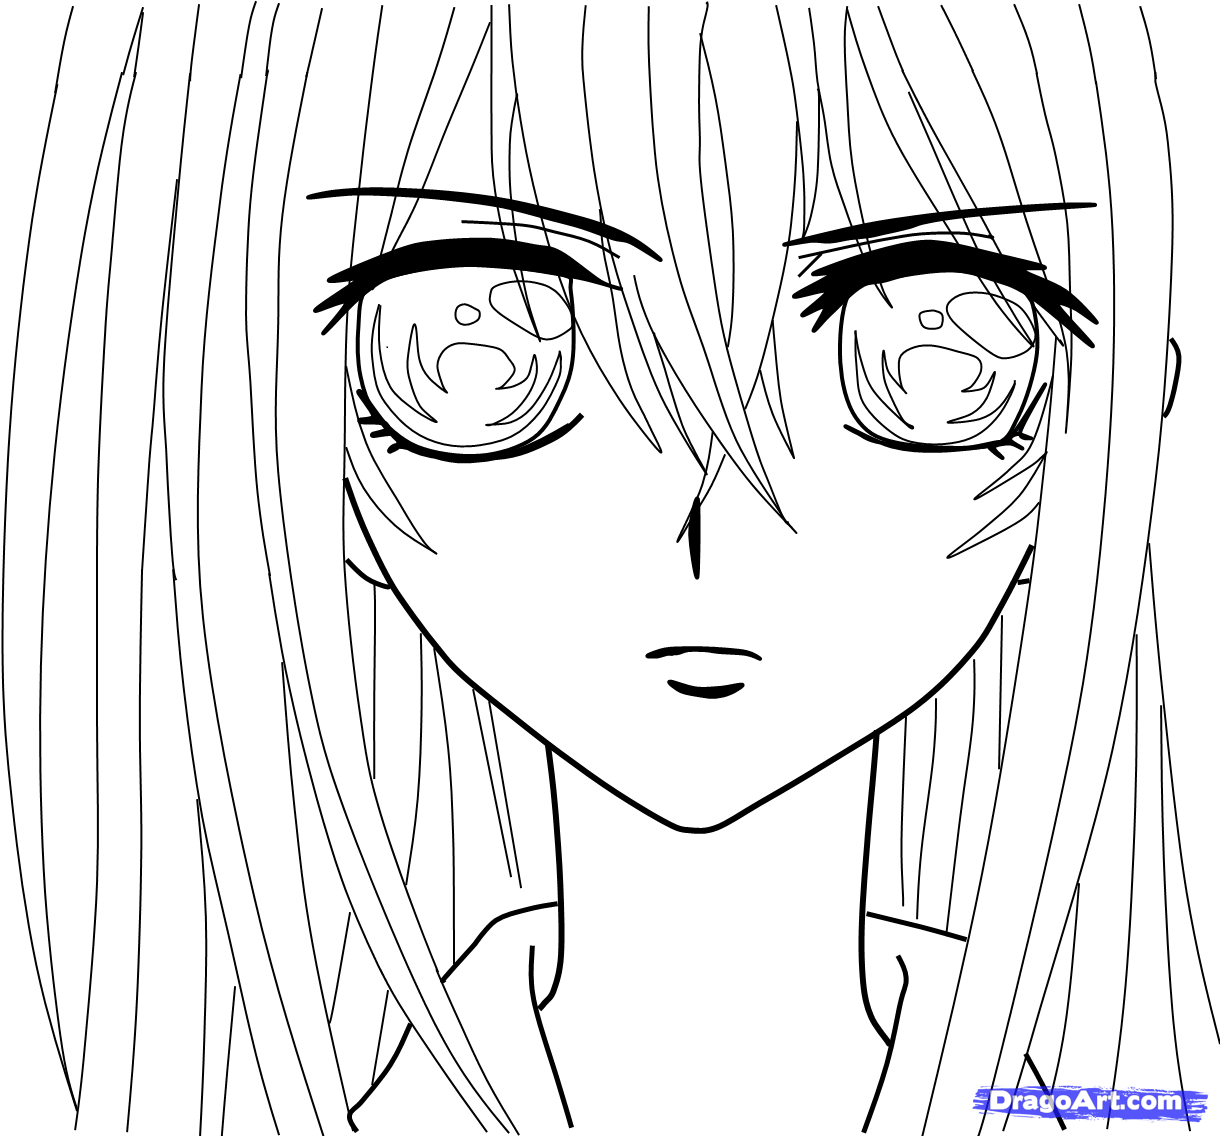 1220x1136 Anime Vampire Girl Coloring Pages